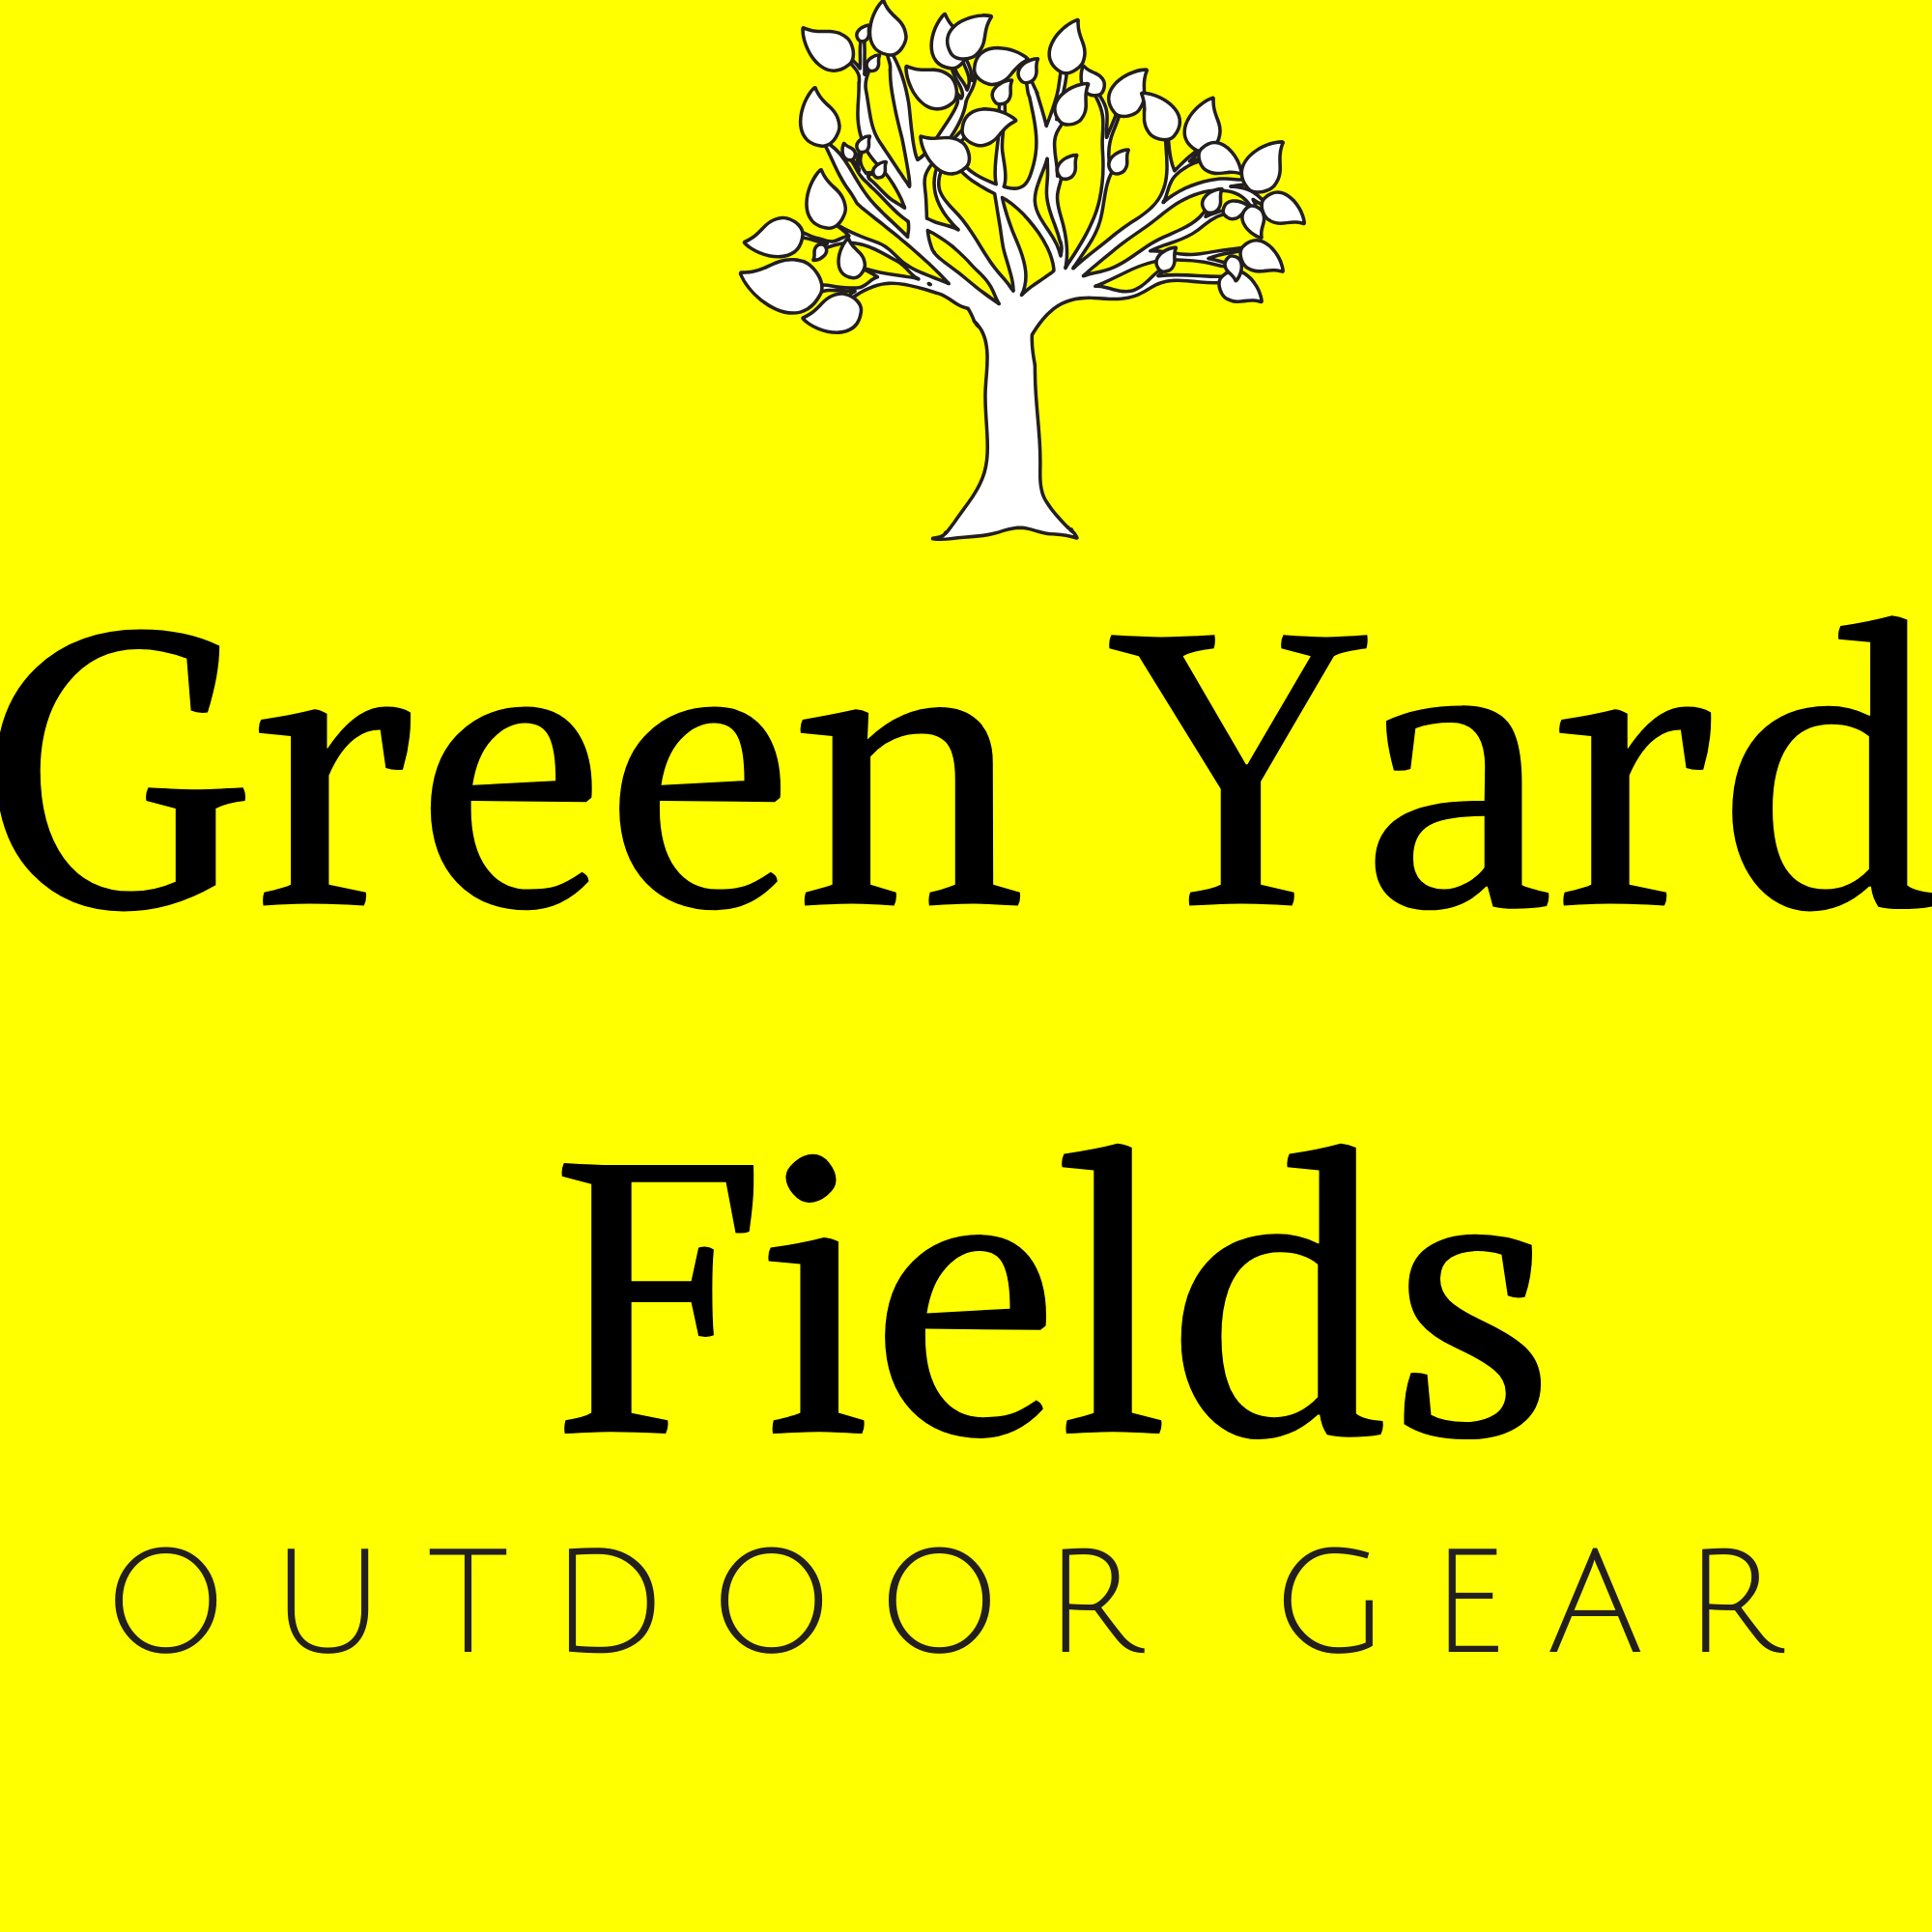 GreenYardFields